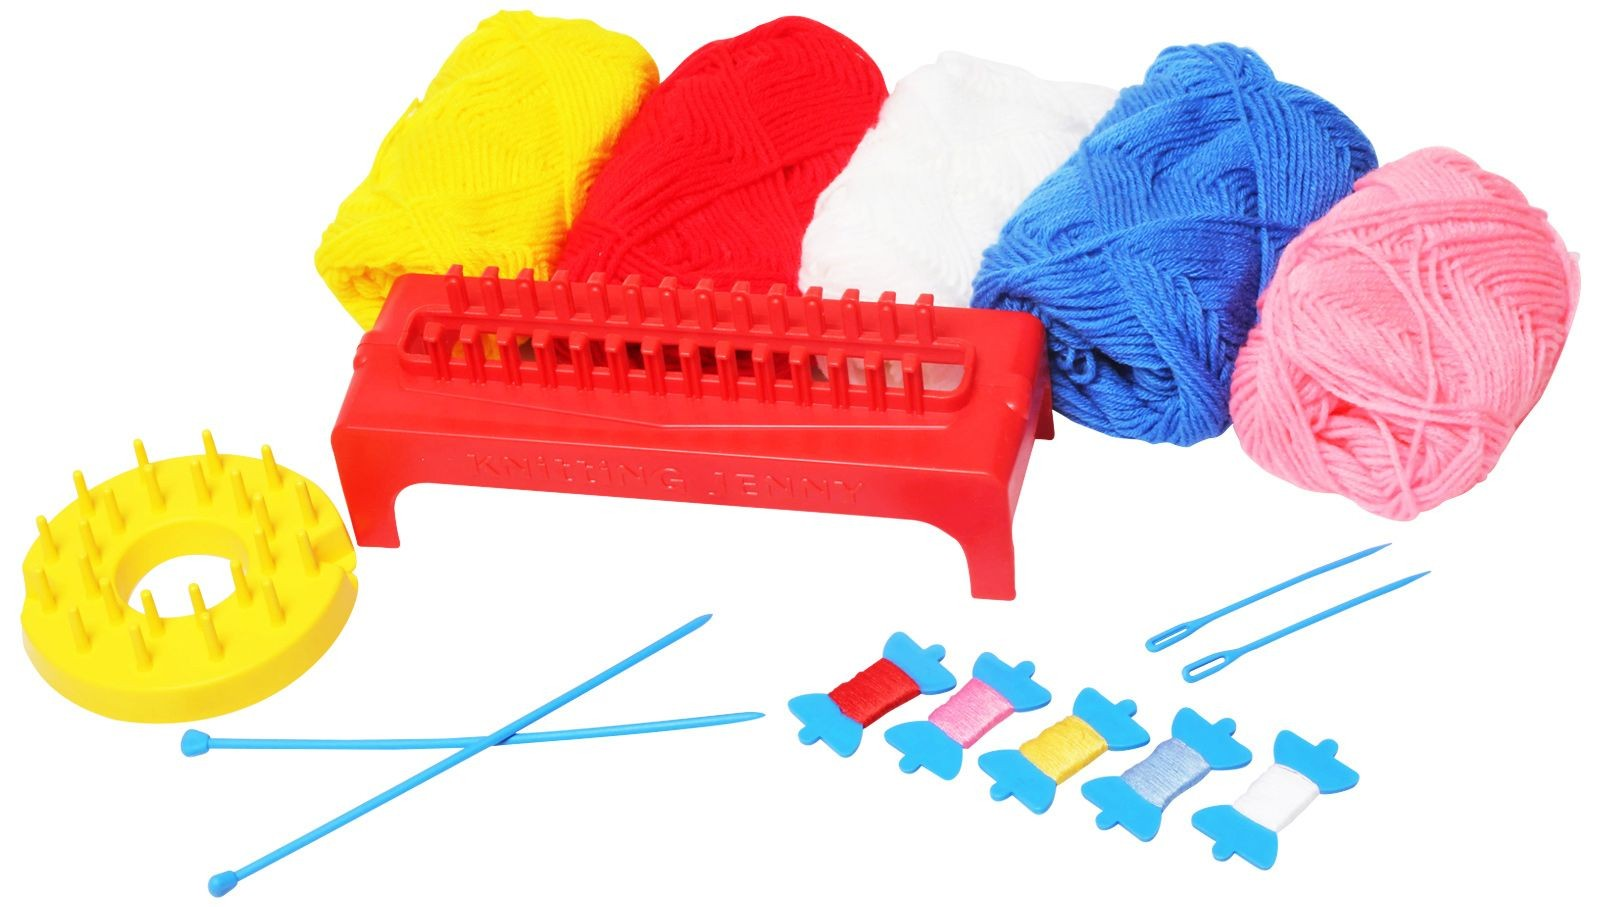 Knitting Jenny Funskool : Funskool knitting jenny game